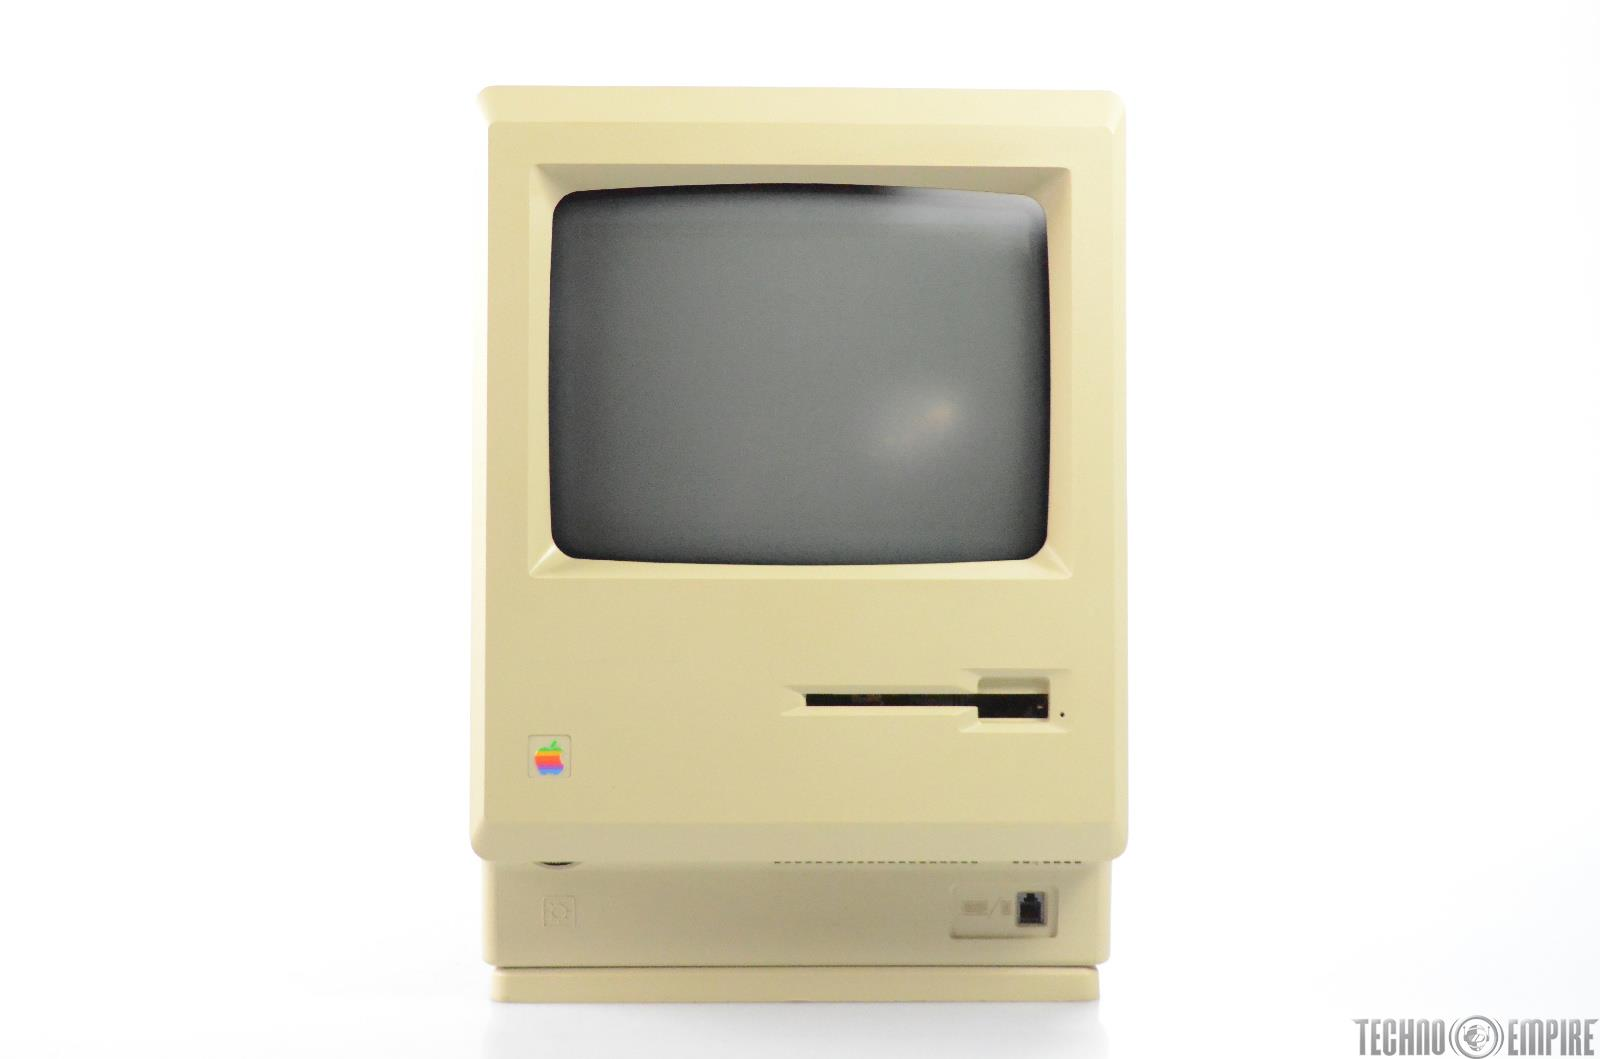 Apple Macintosh 512K M0001WP Personal Computer w/ Keyboard Cable PC 512 K #31547